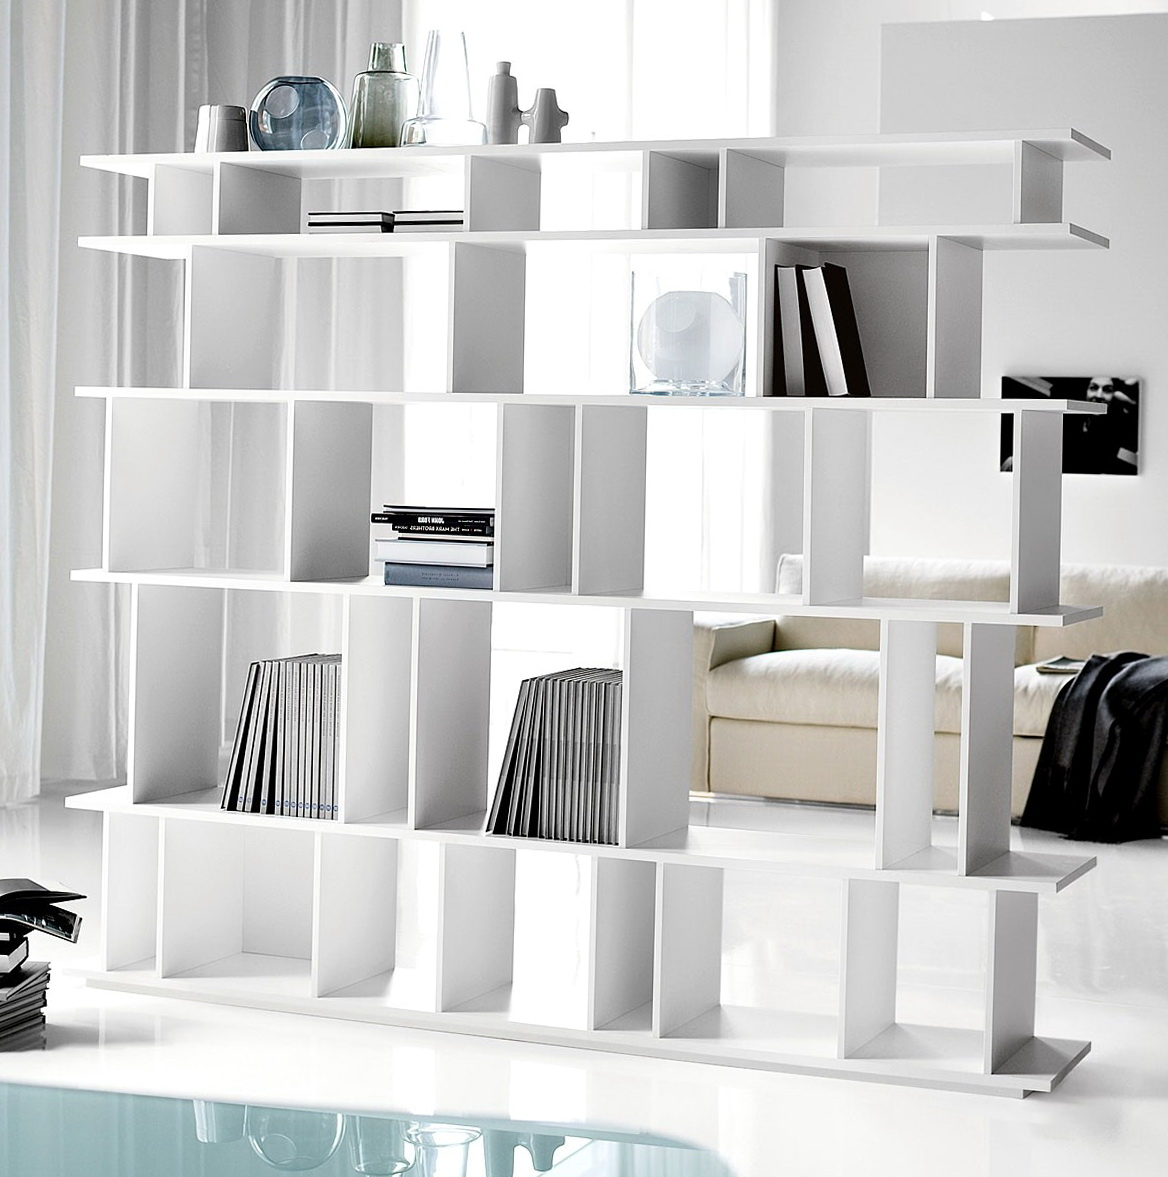 Permalink to Double Sided Bookshelf Room Divider